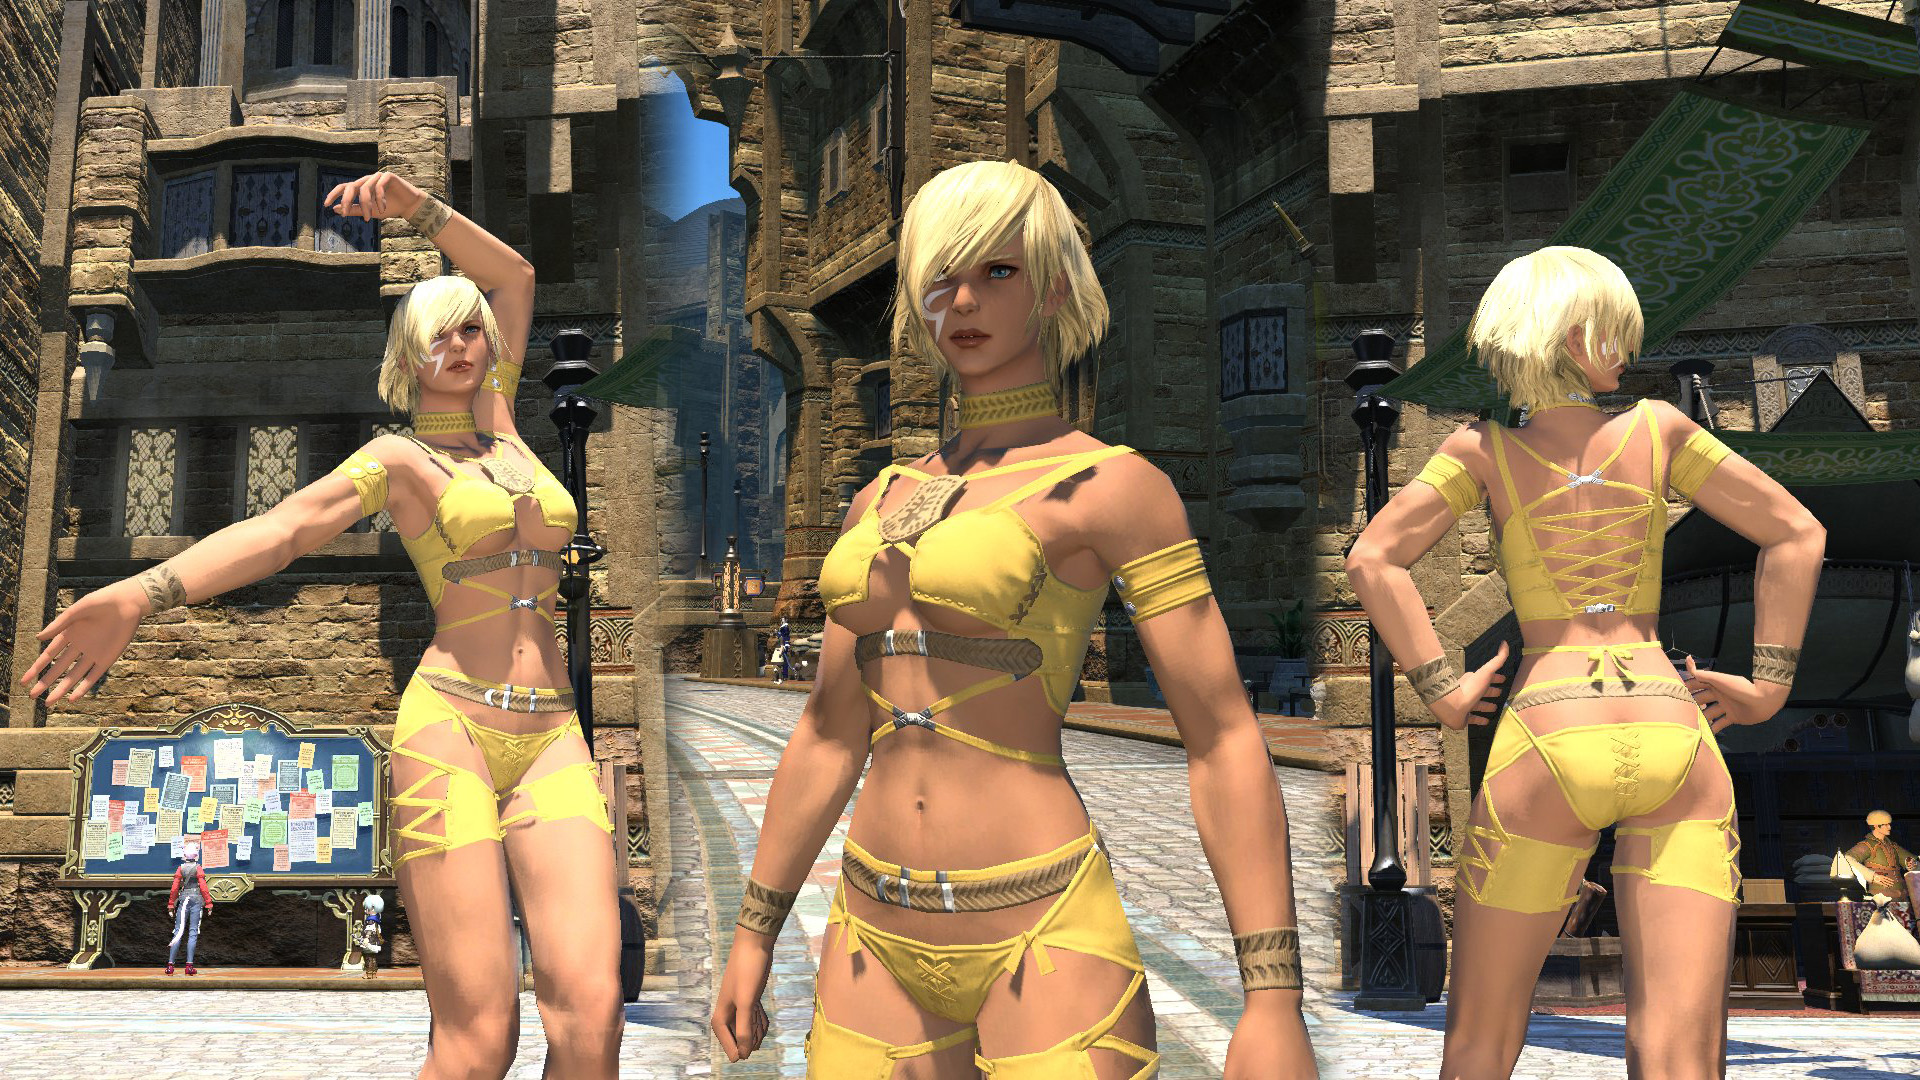 rowe ffxiv limsa through tonight well screenshots lifted phase beta decisions character huge left spoilered plans returning launch players